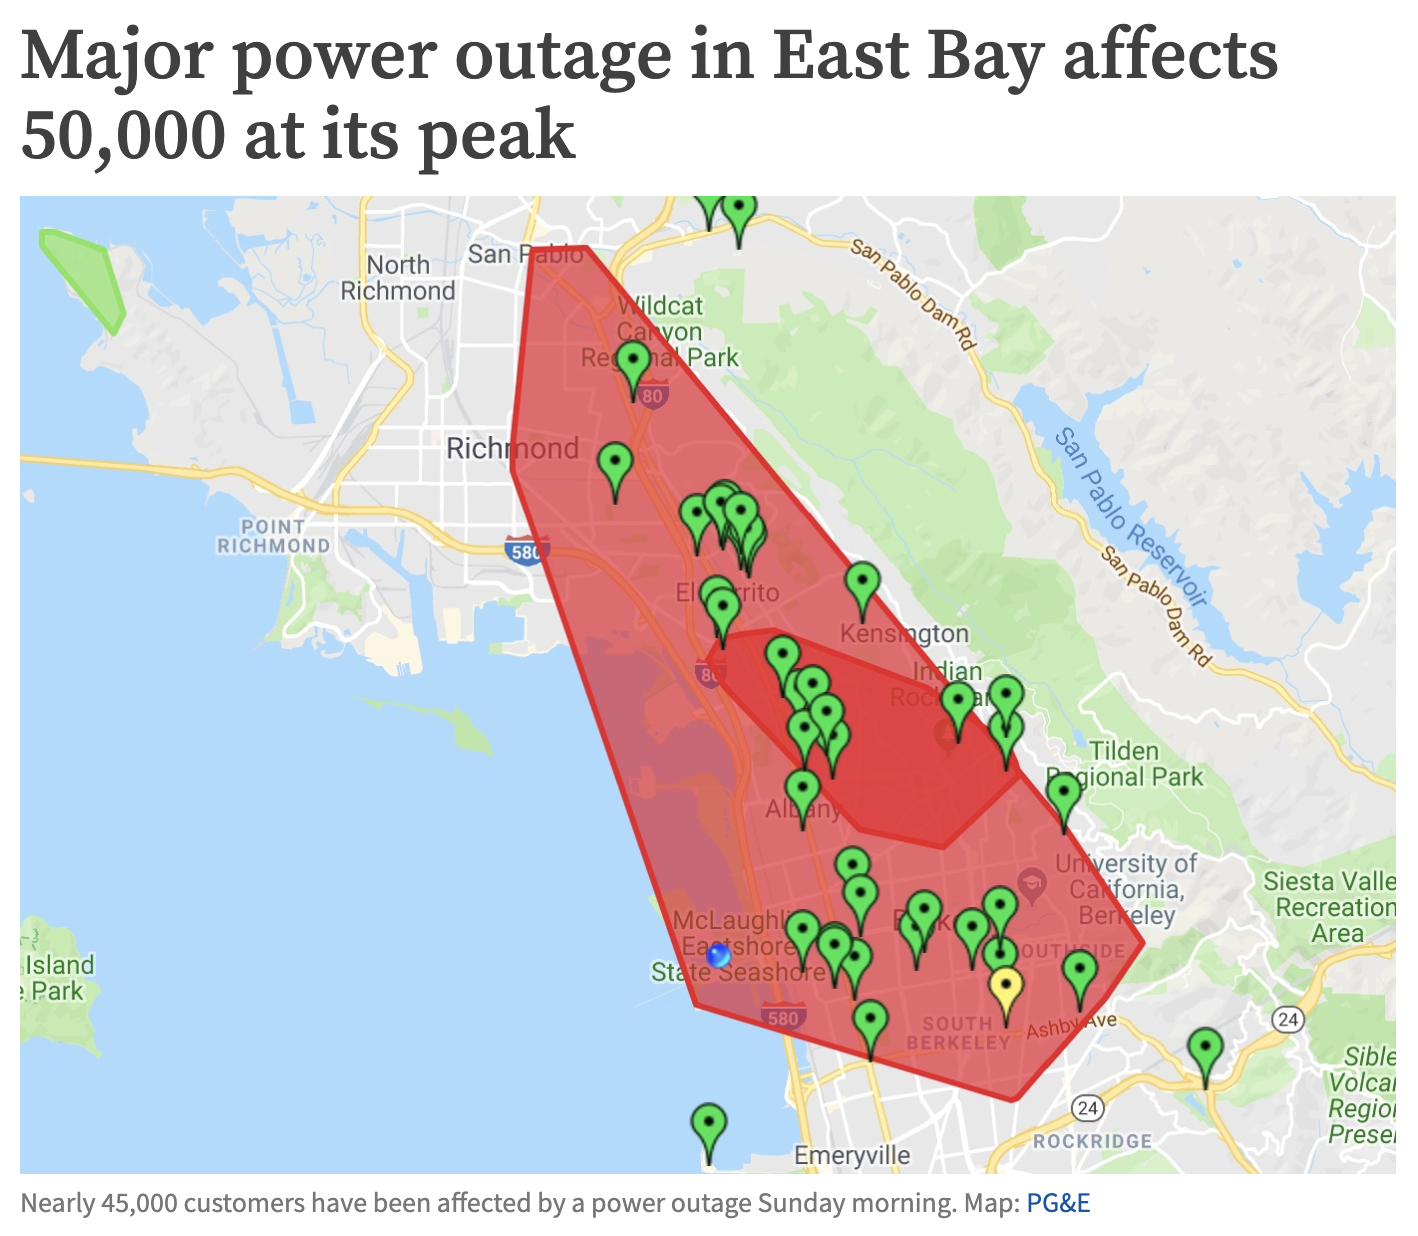 Major-power-outage-East-Bay-berkeleyside-2019-09-29.png